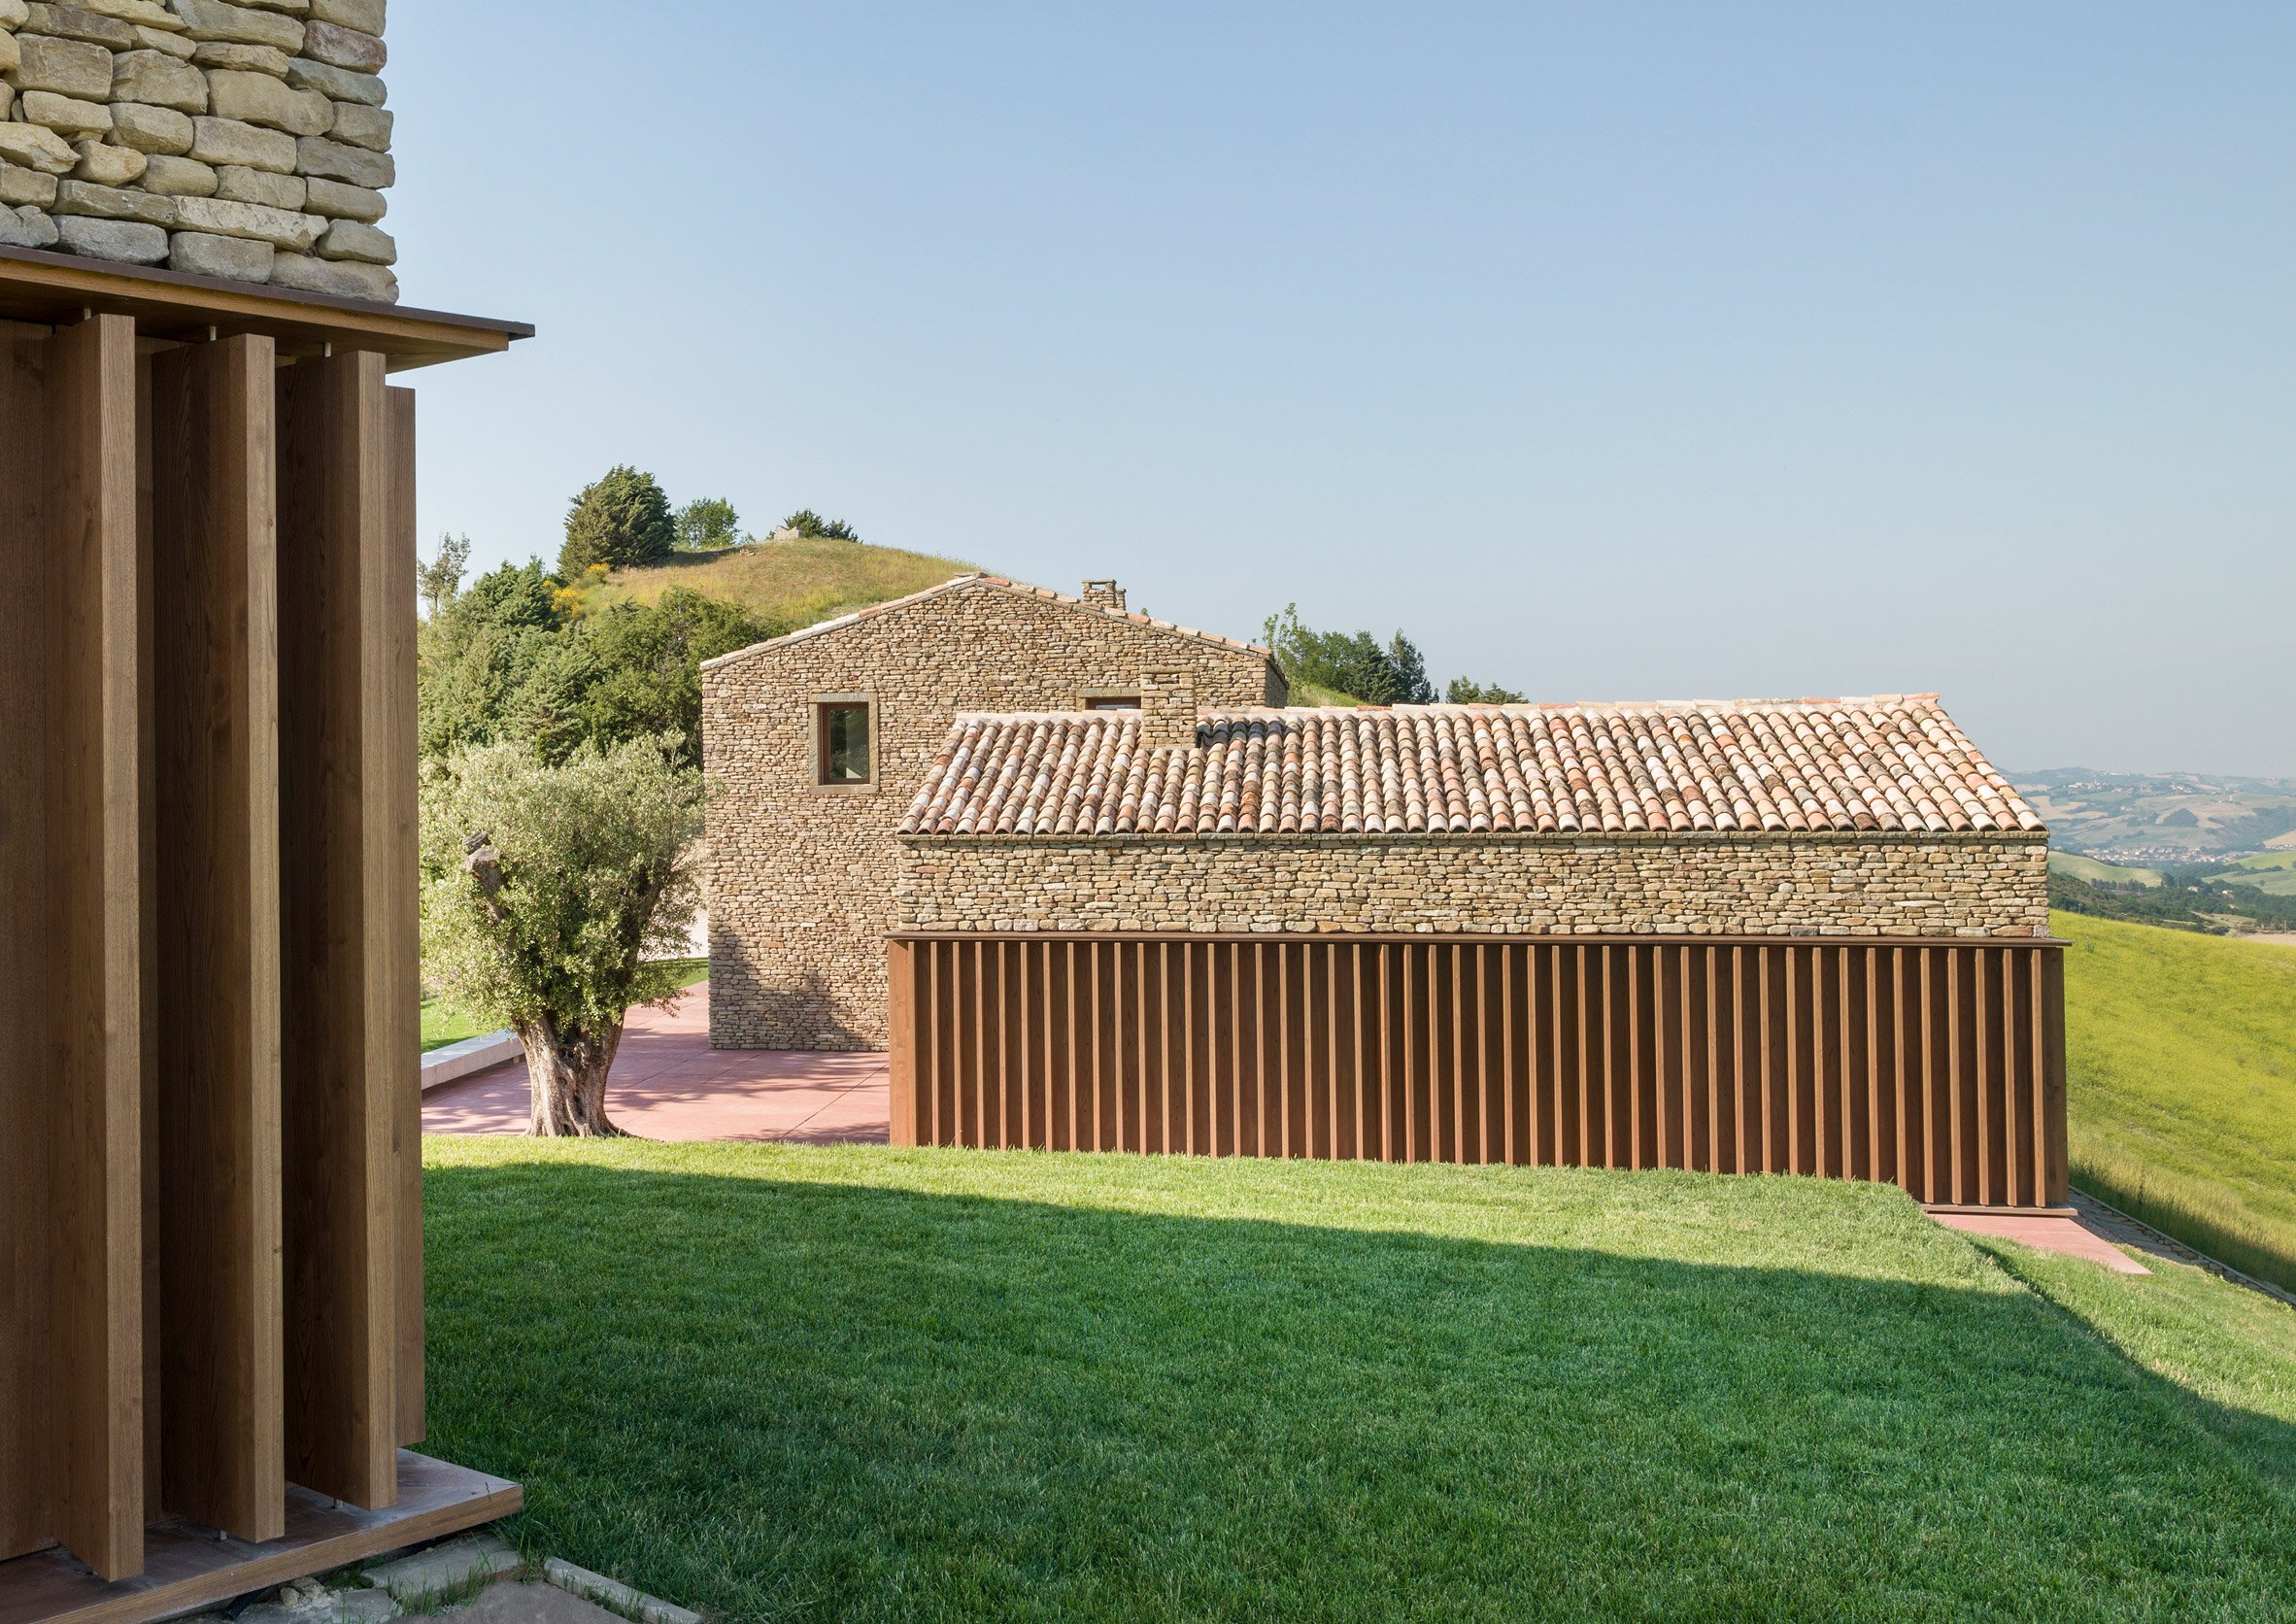 Rural Italian residence combines traditional stone exterior with contemporary details